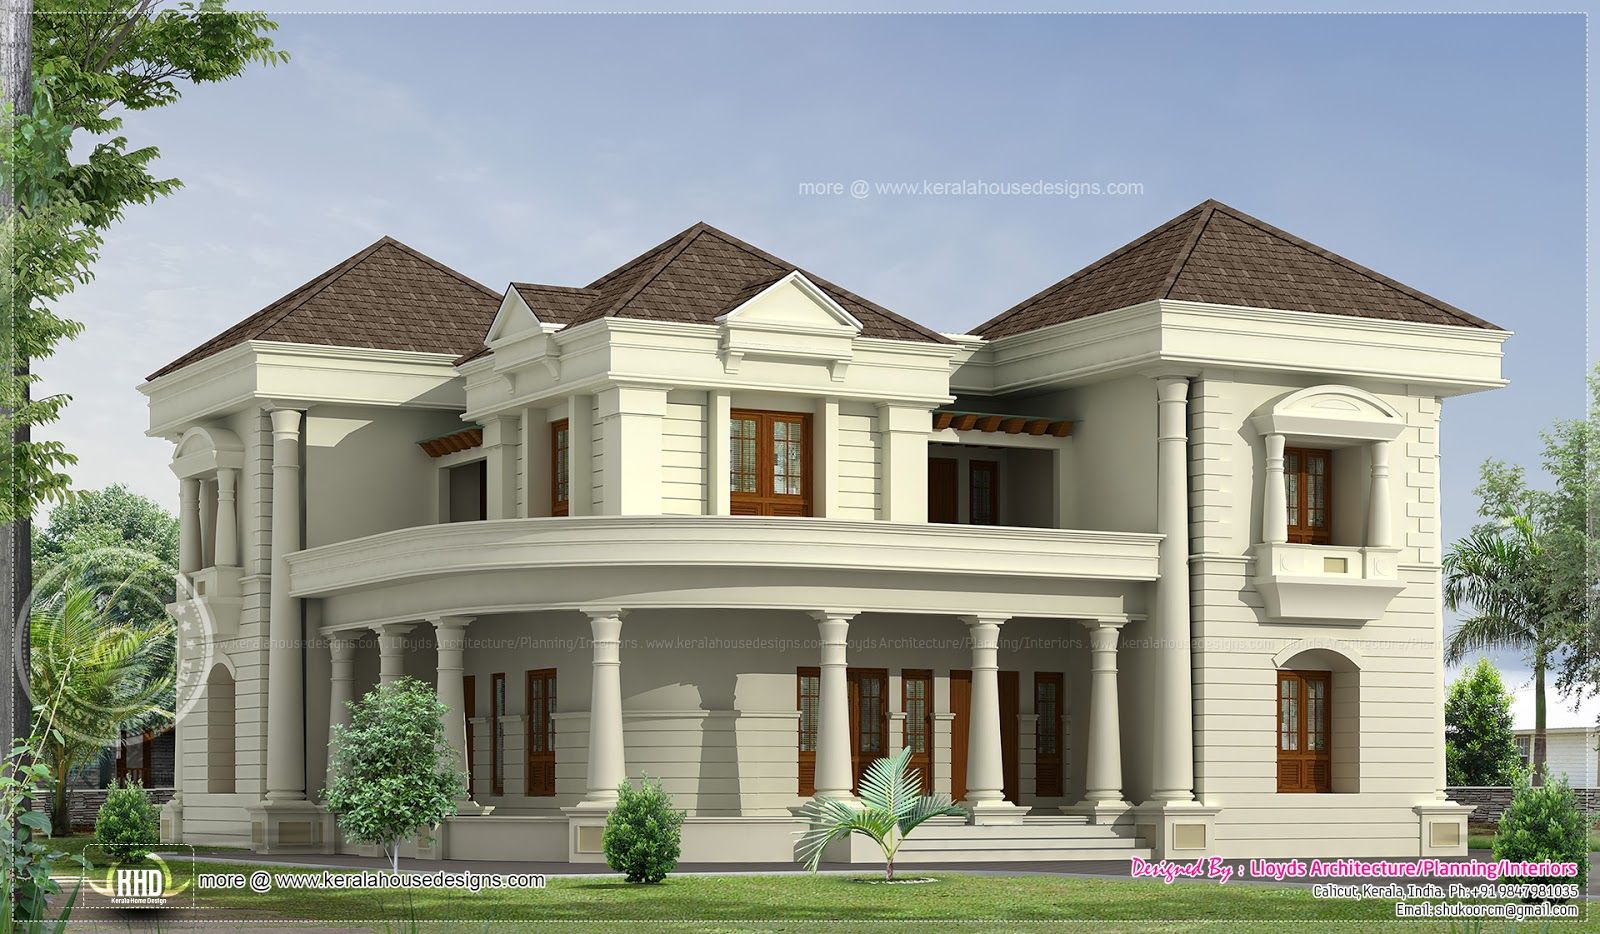 Modern bungalows bedroom luxurious bungalow floor plan for Modern bungalow house designs and floor plans